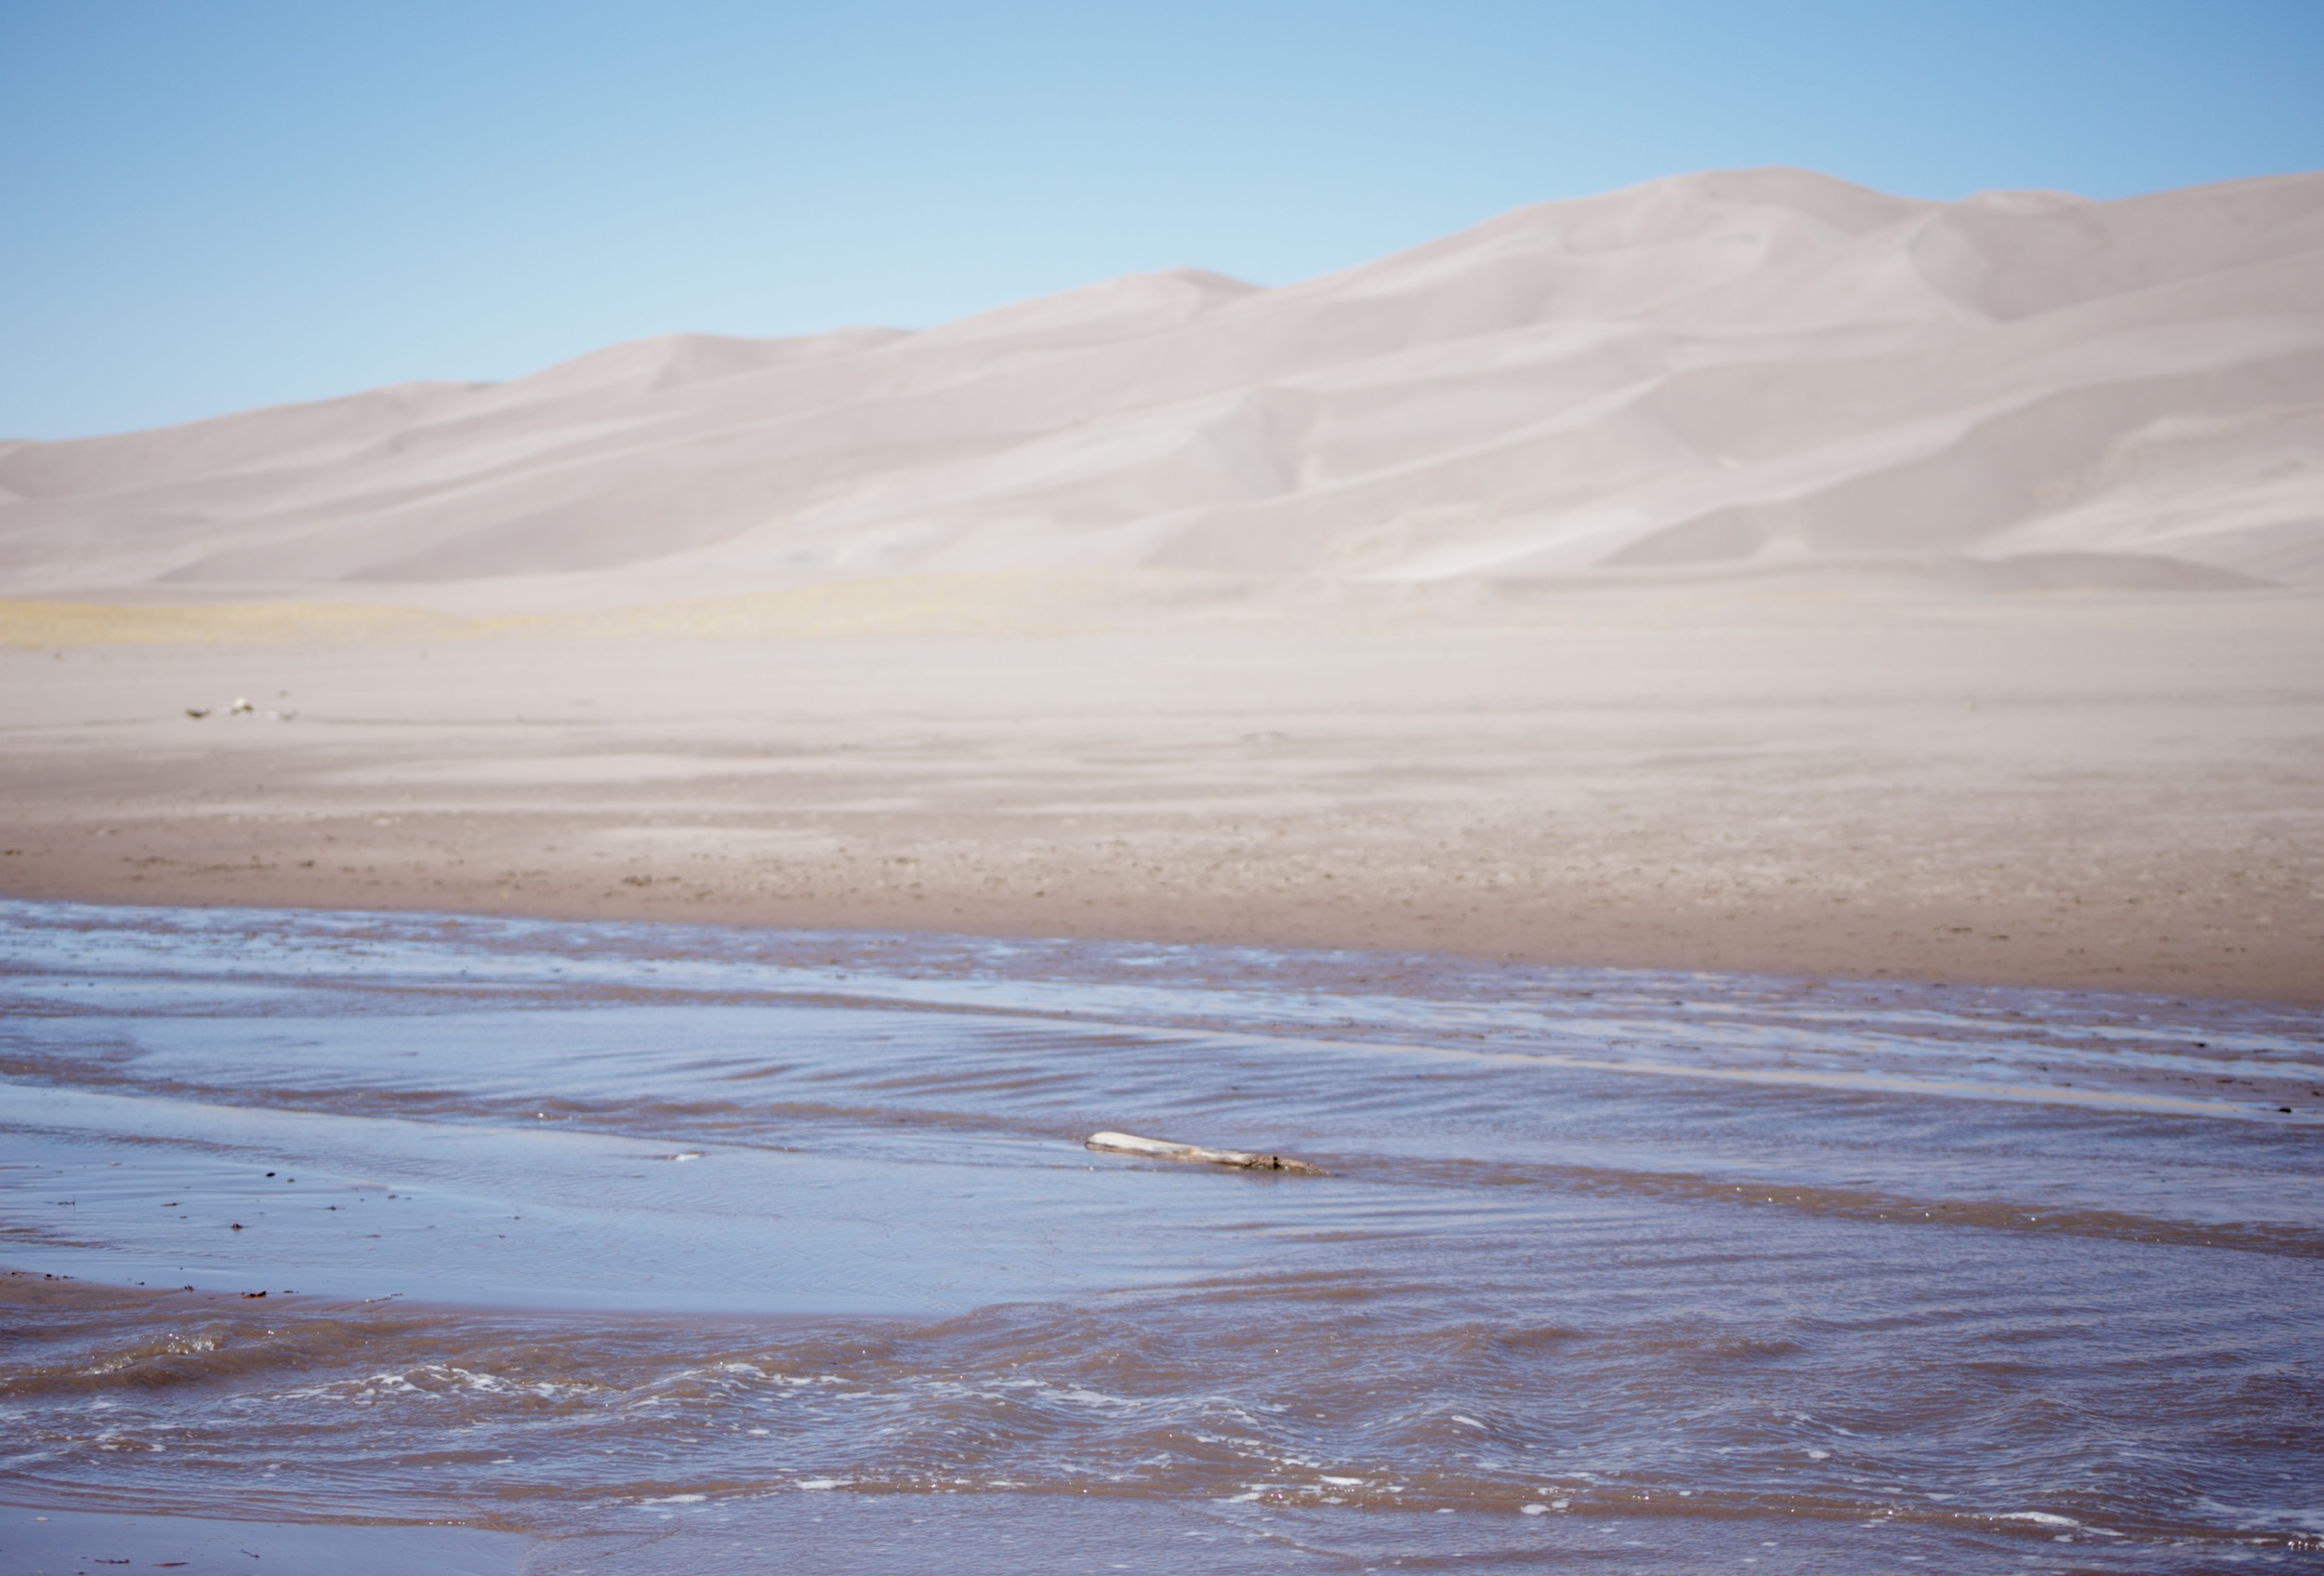 Medano Creek only shows up in spring at the Great Sand Dunes park.